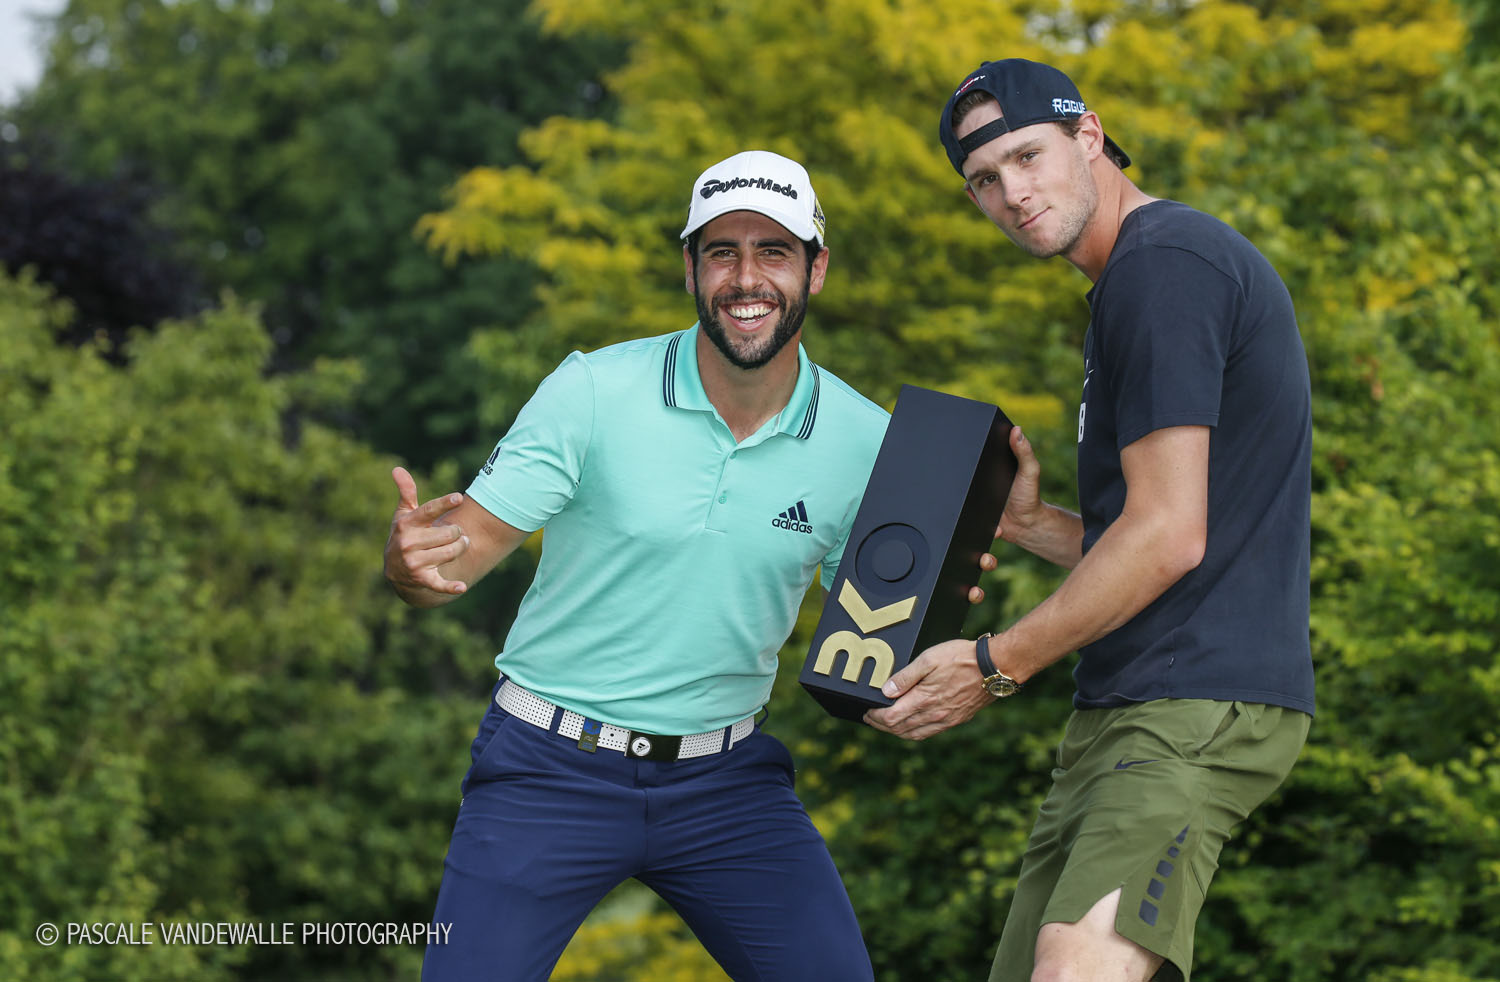 BELGIAN KNOCKOUT 2018 hosted by THOMAS PIETERS